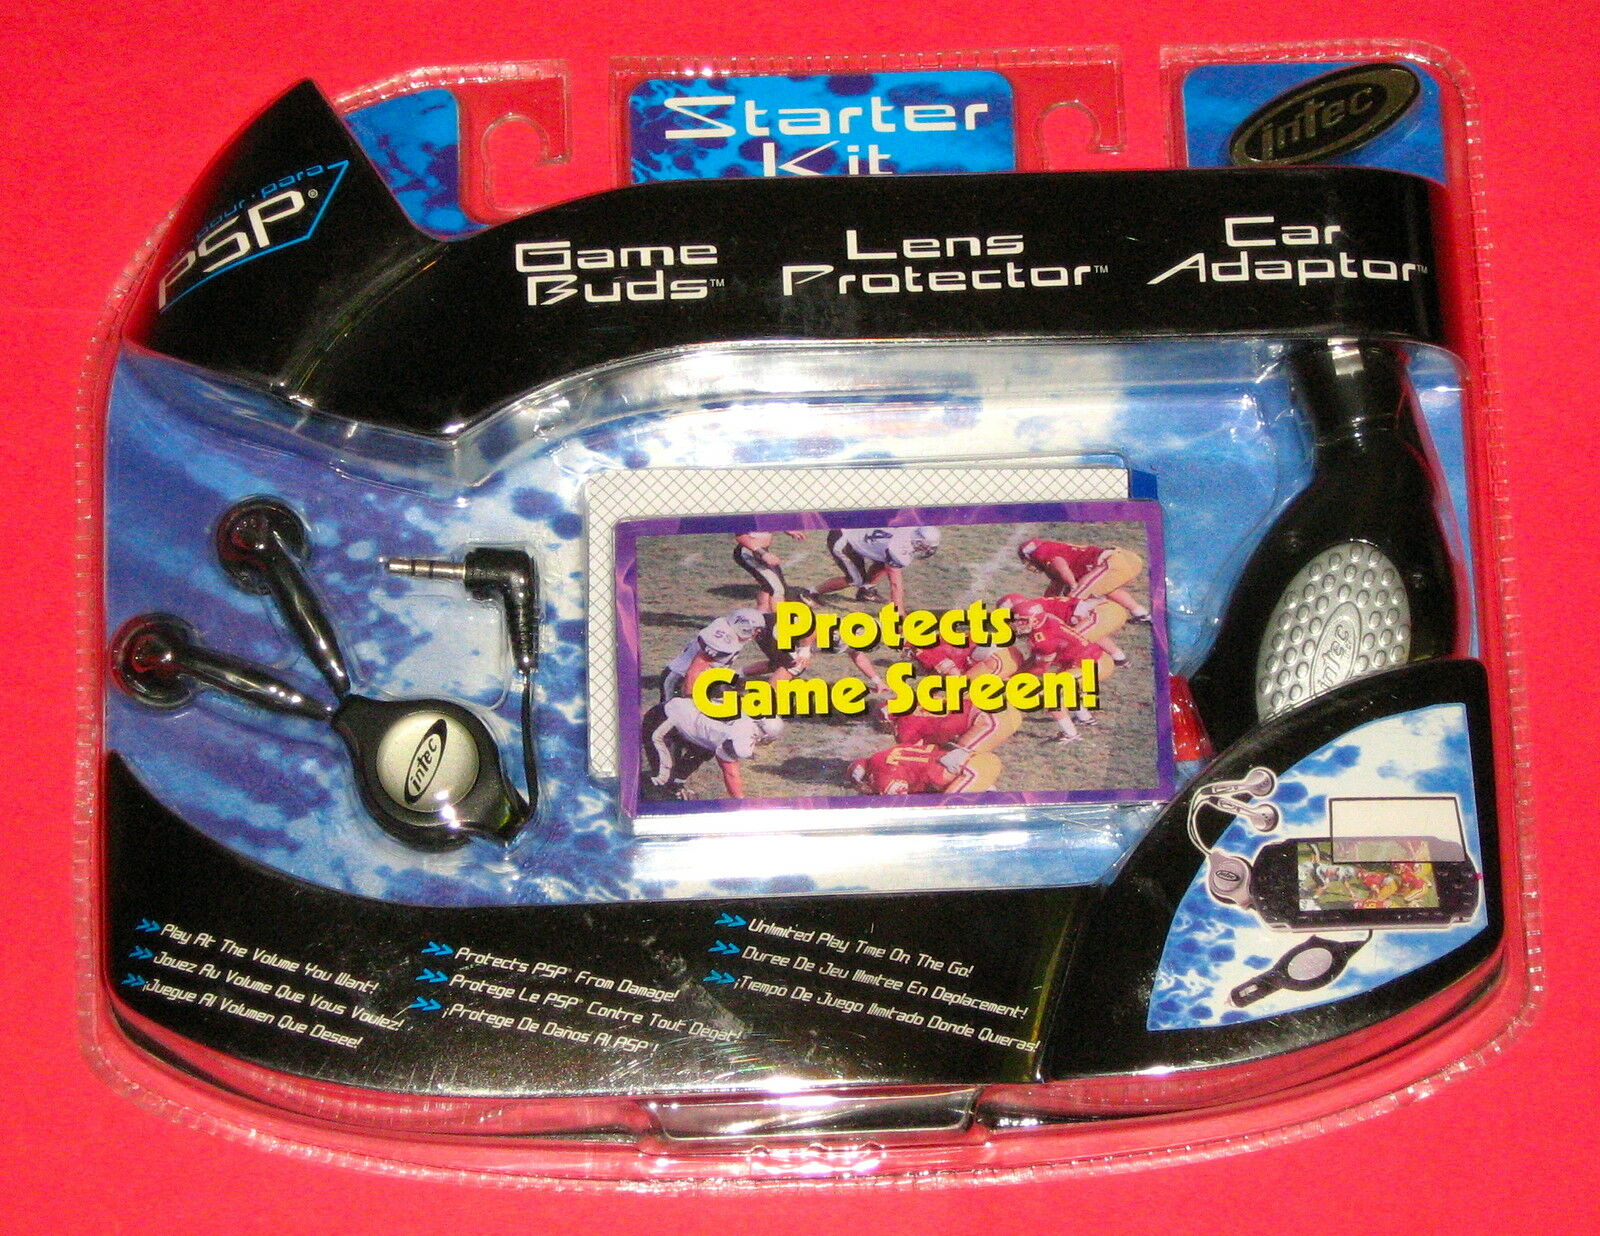 New Intec Starter Kit For Sony Psp Game Buds Lens Protector And Car Charger 1 Of 1only 2 Available